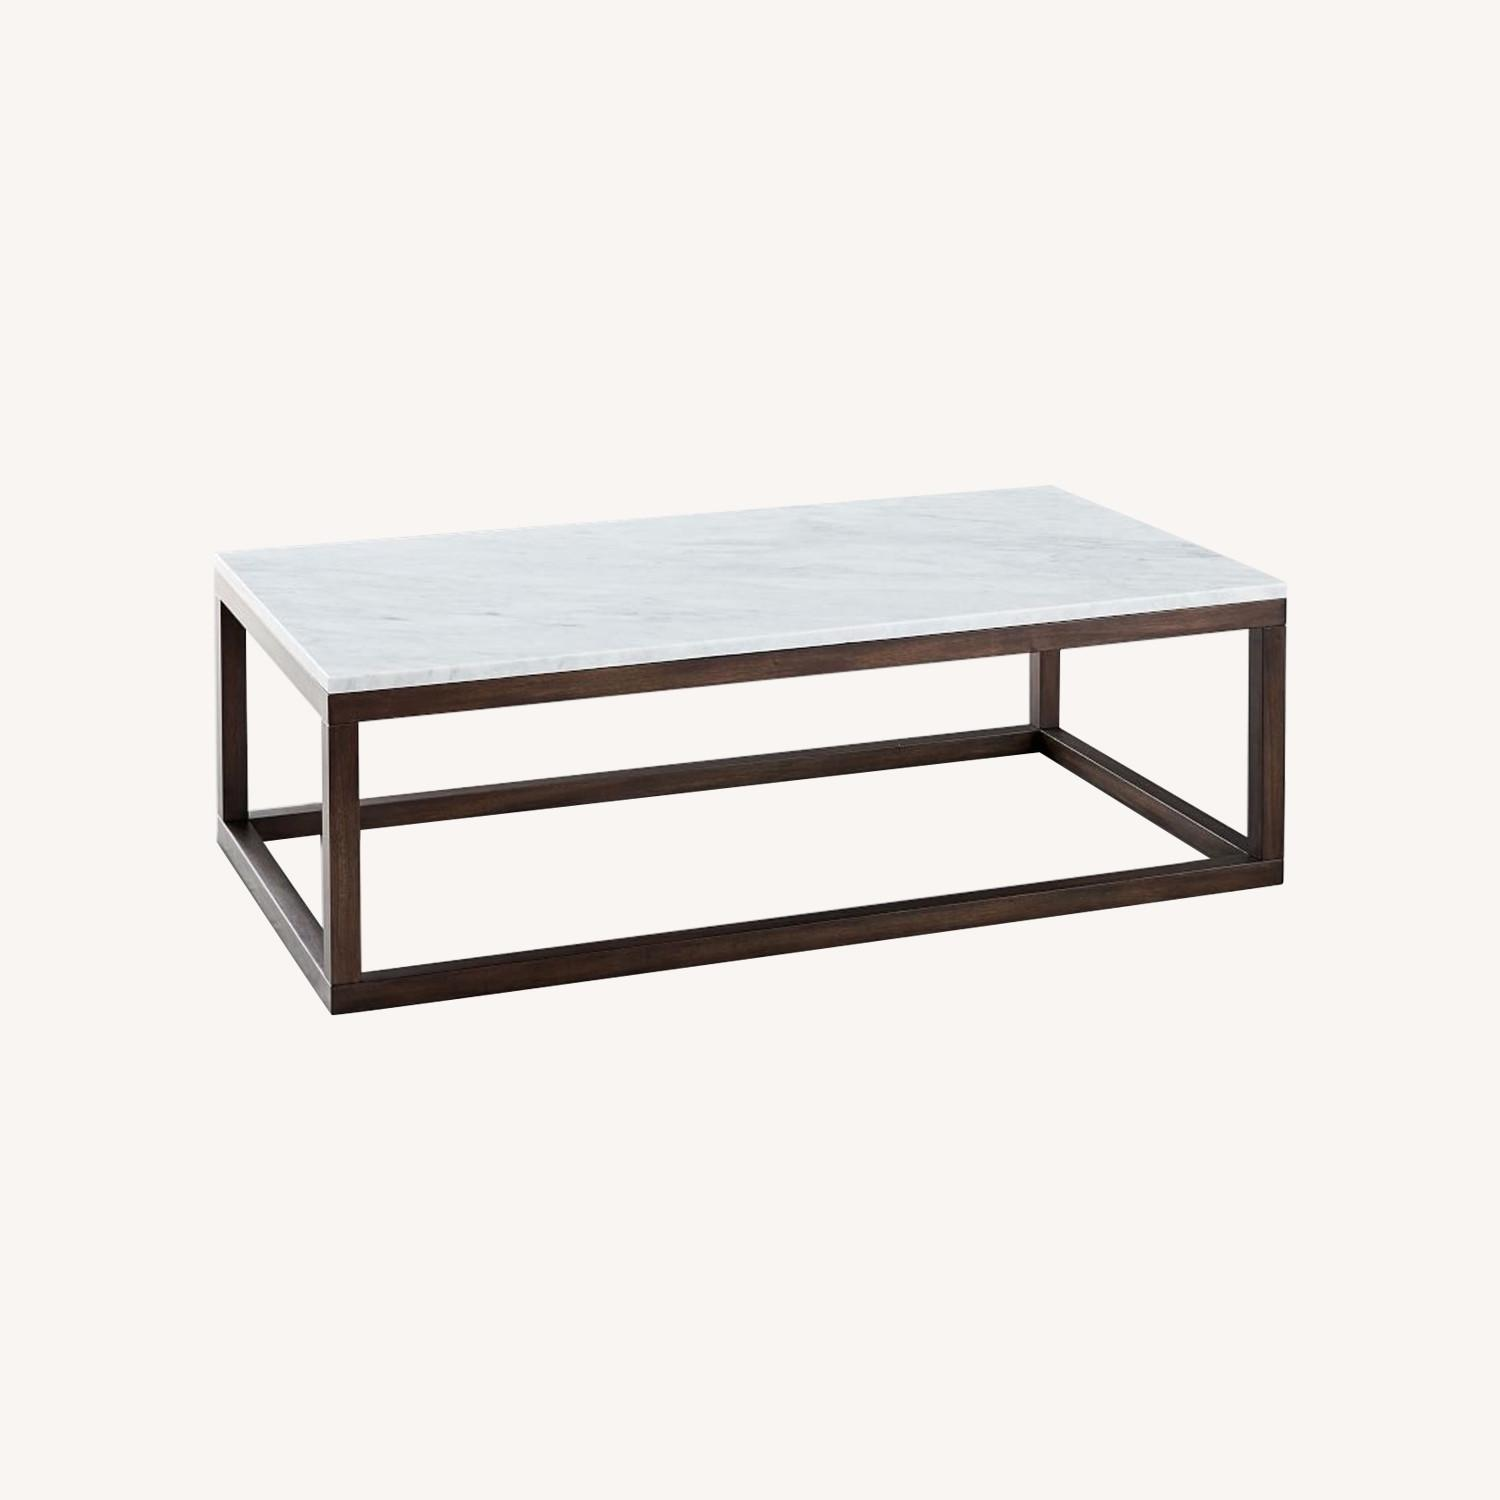 West Elm wood frame coffee table - image-0